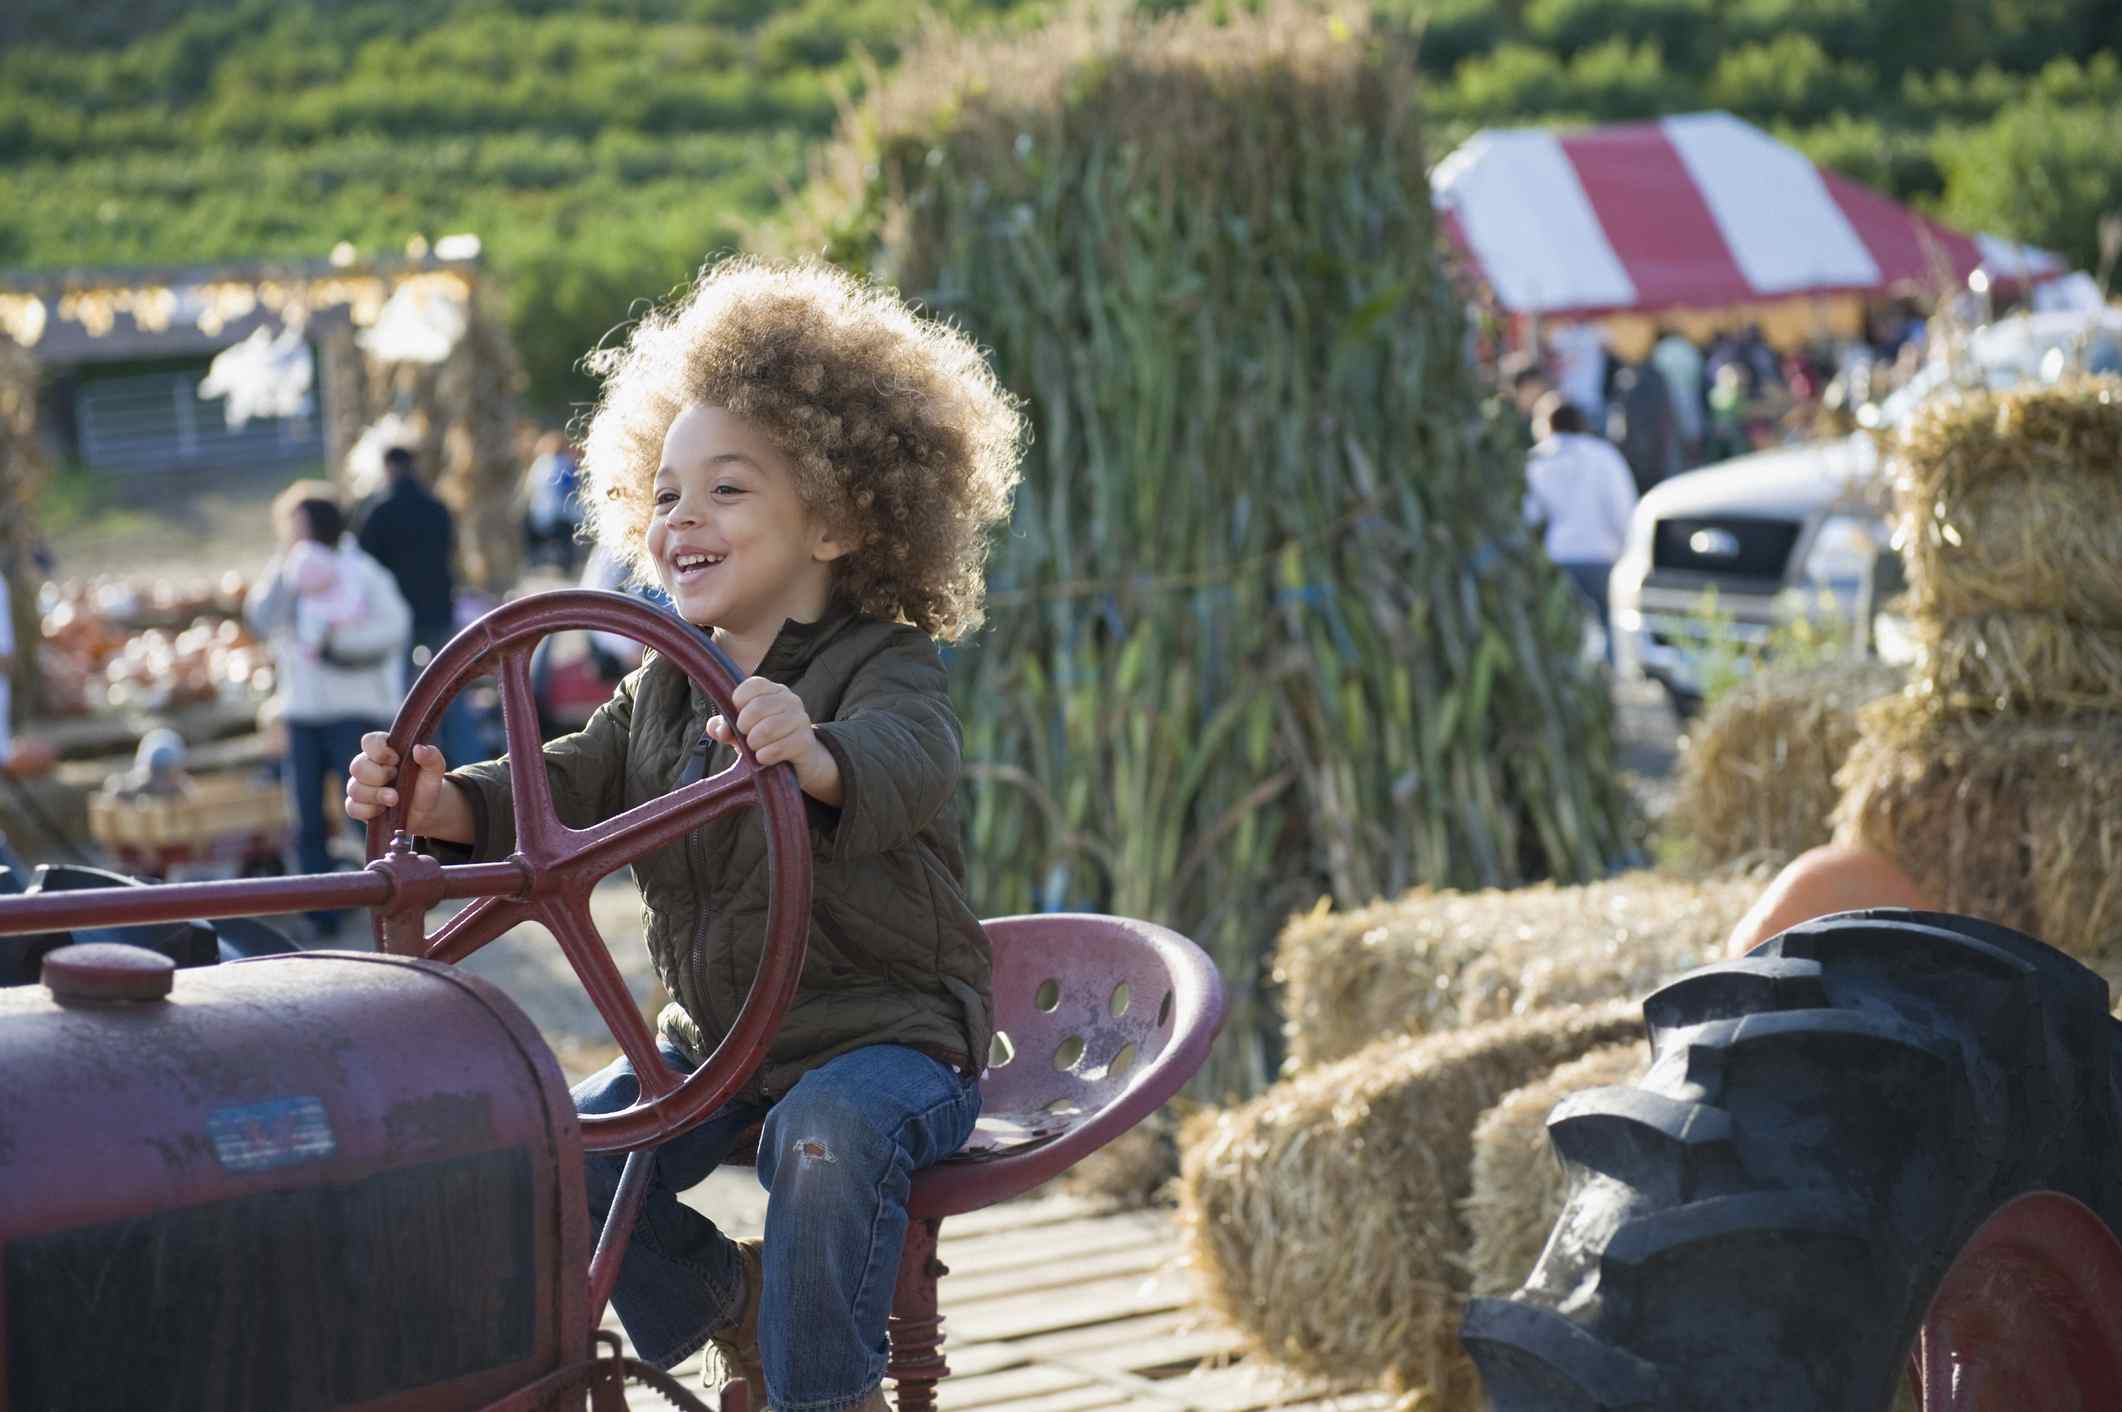 A boy plays on a tractor at a harvest festival